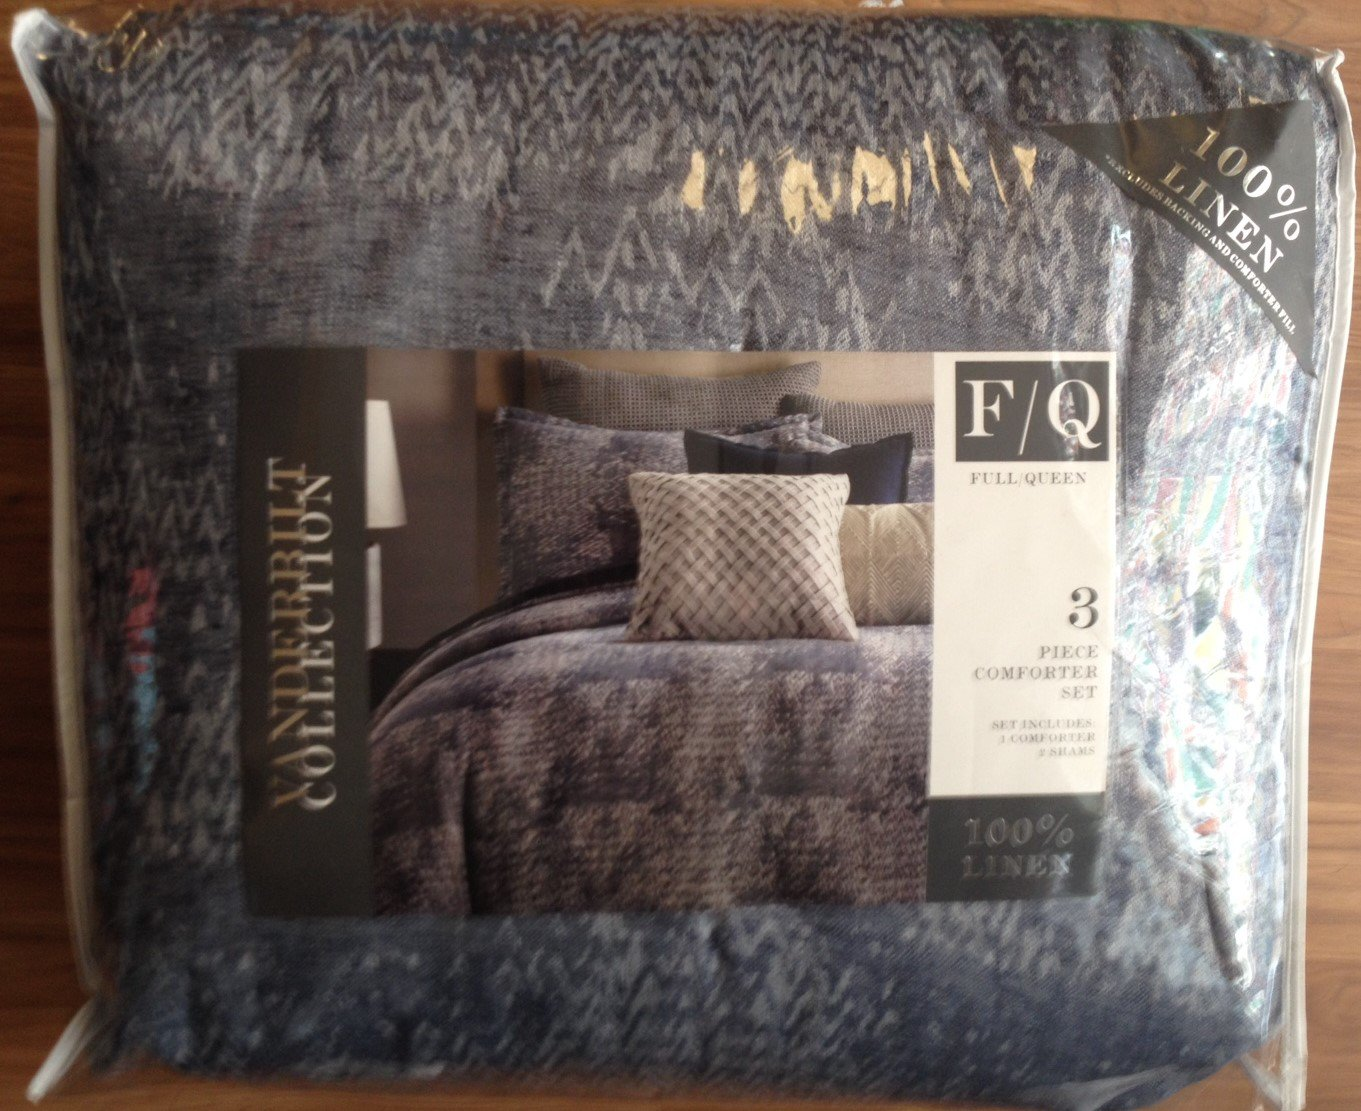 Bedding - NEW Vanderbilt 3-Pc. Comforter Set - FULL/QUEEN